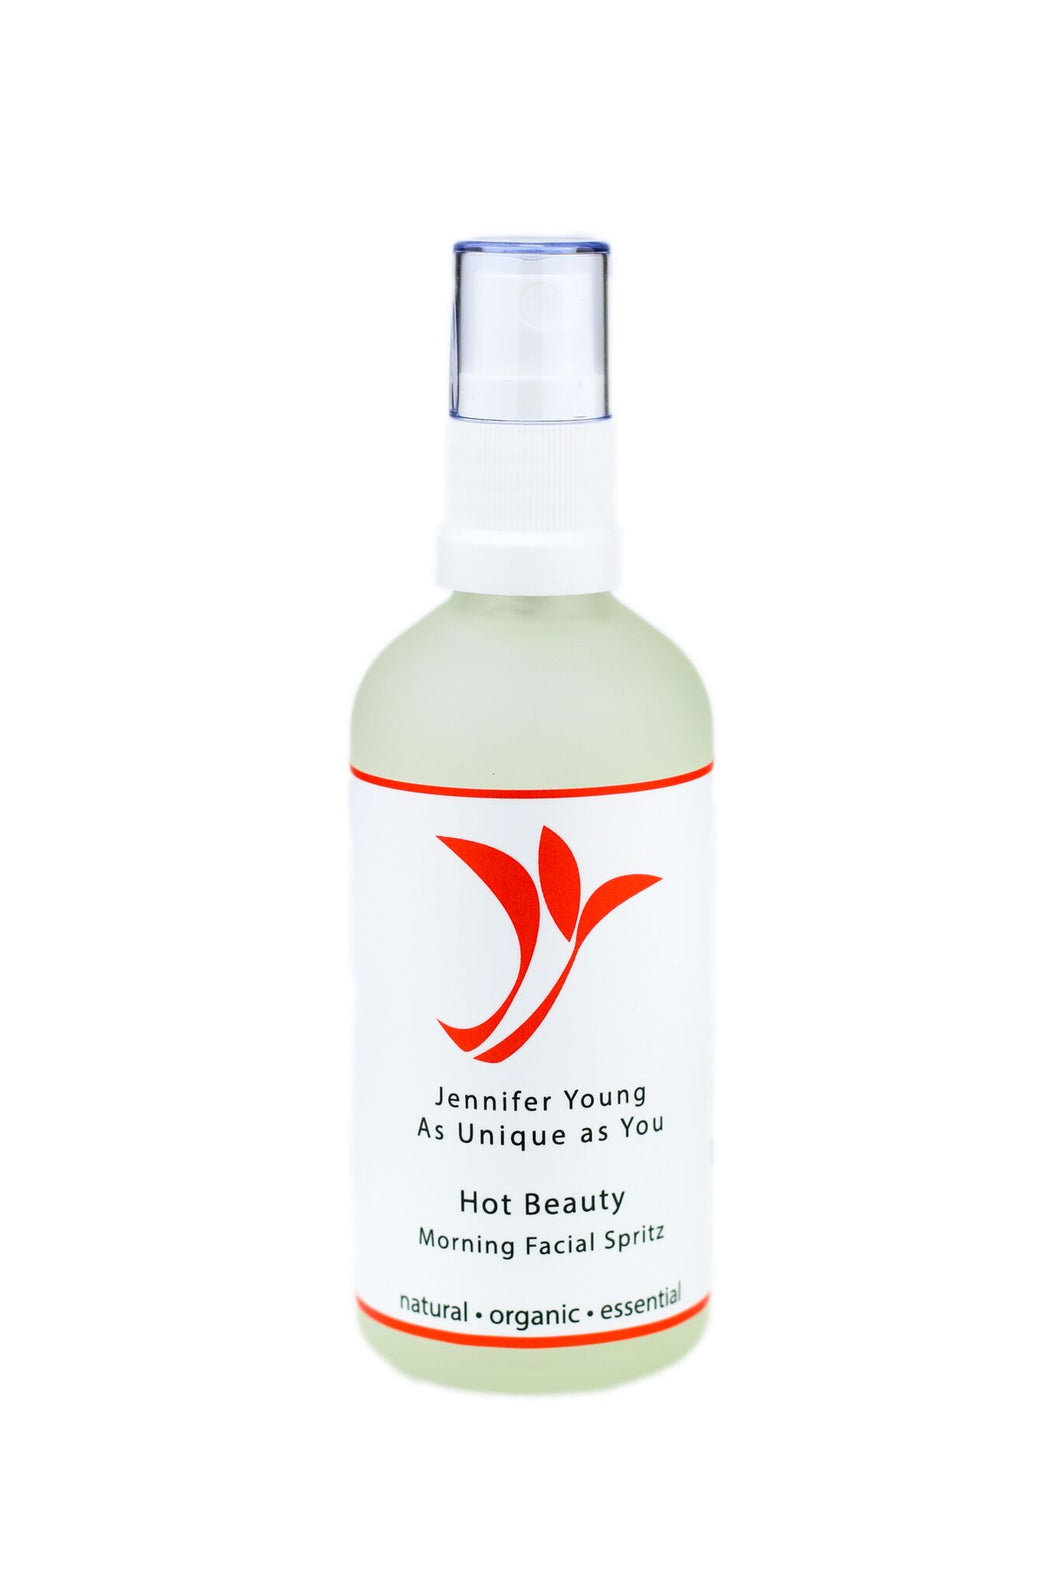 Hot Beauty Morning Facial Spritz